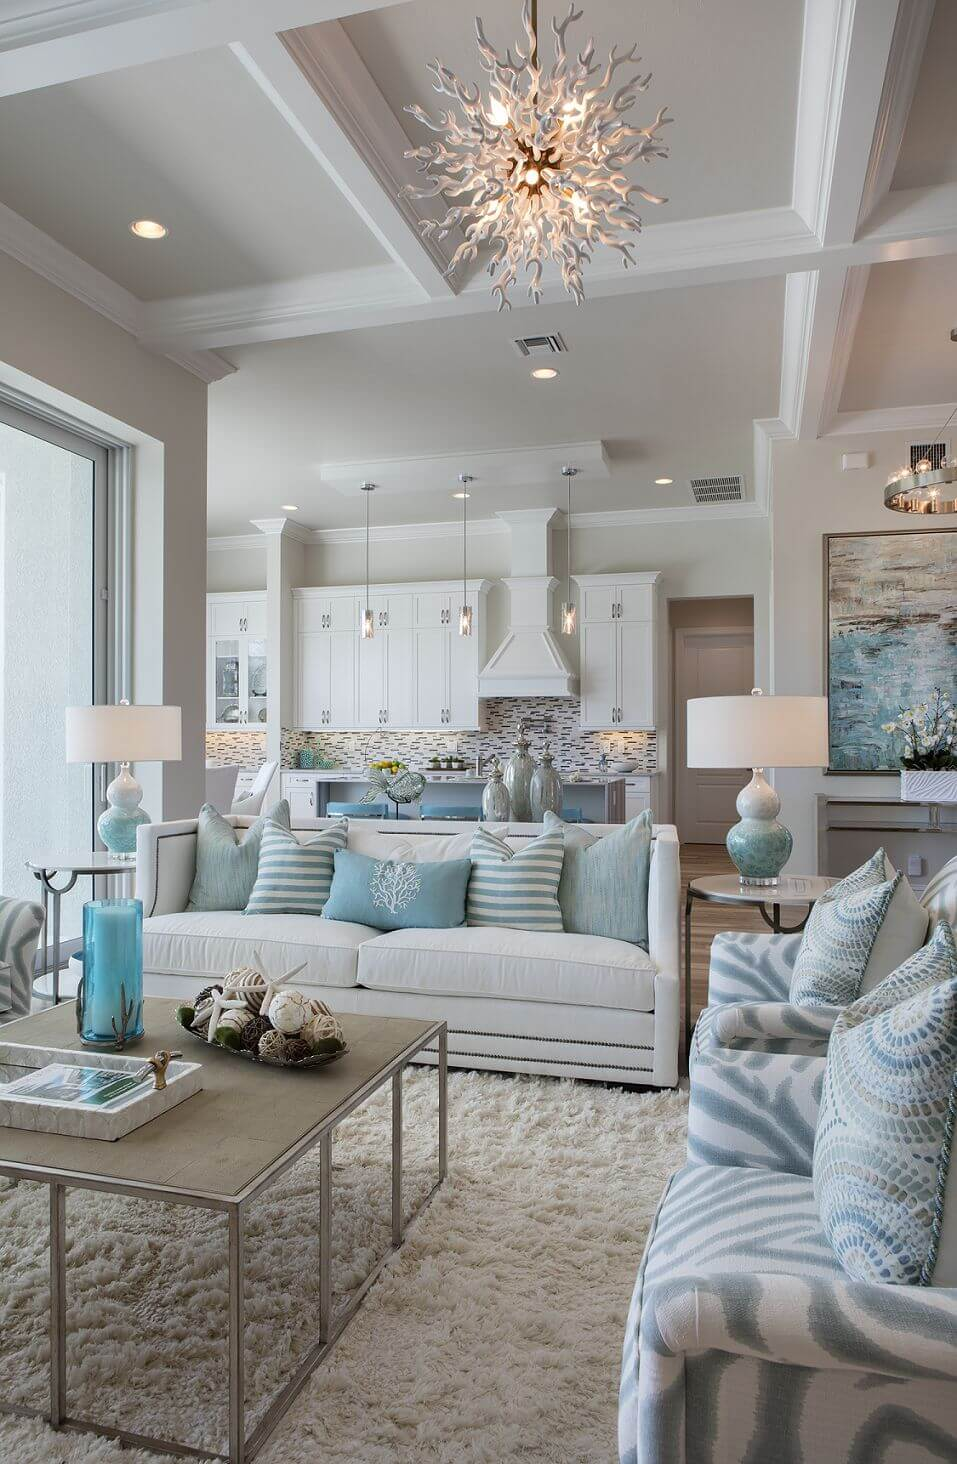 Wonderful Beach Inspired Living Space With Coral Lighting